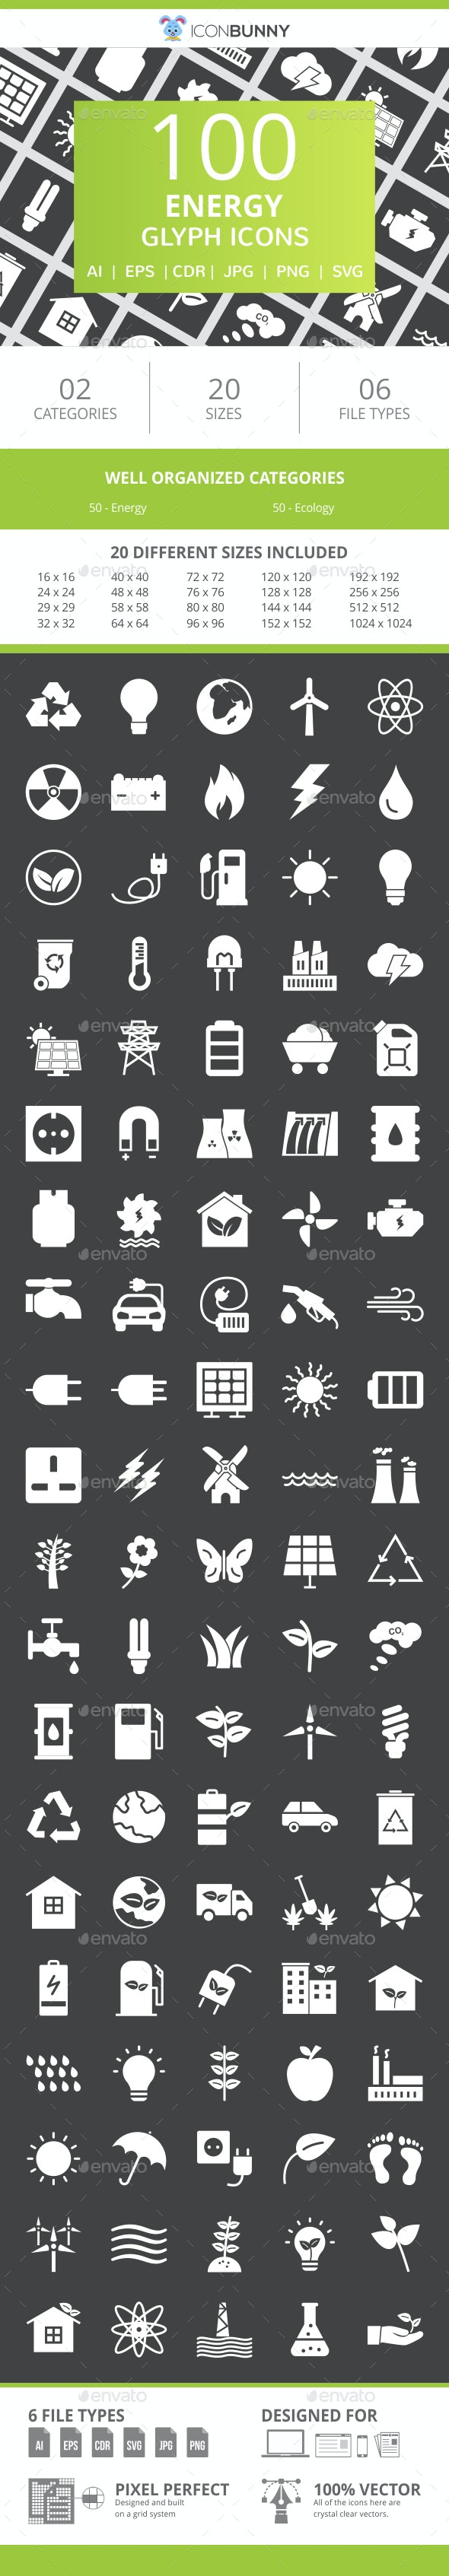 100 Energy Glyph Inverted Icons - Icons